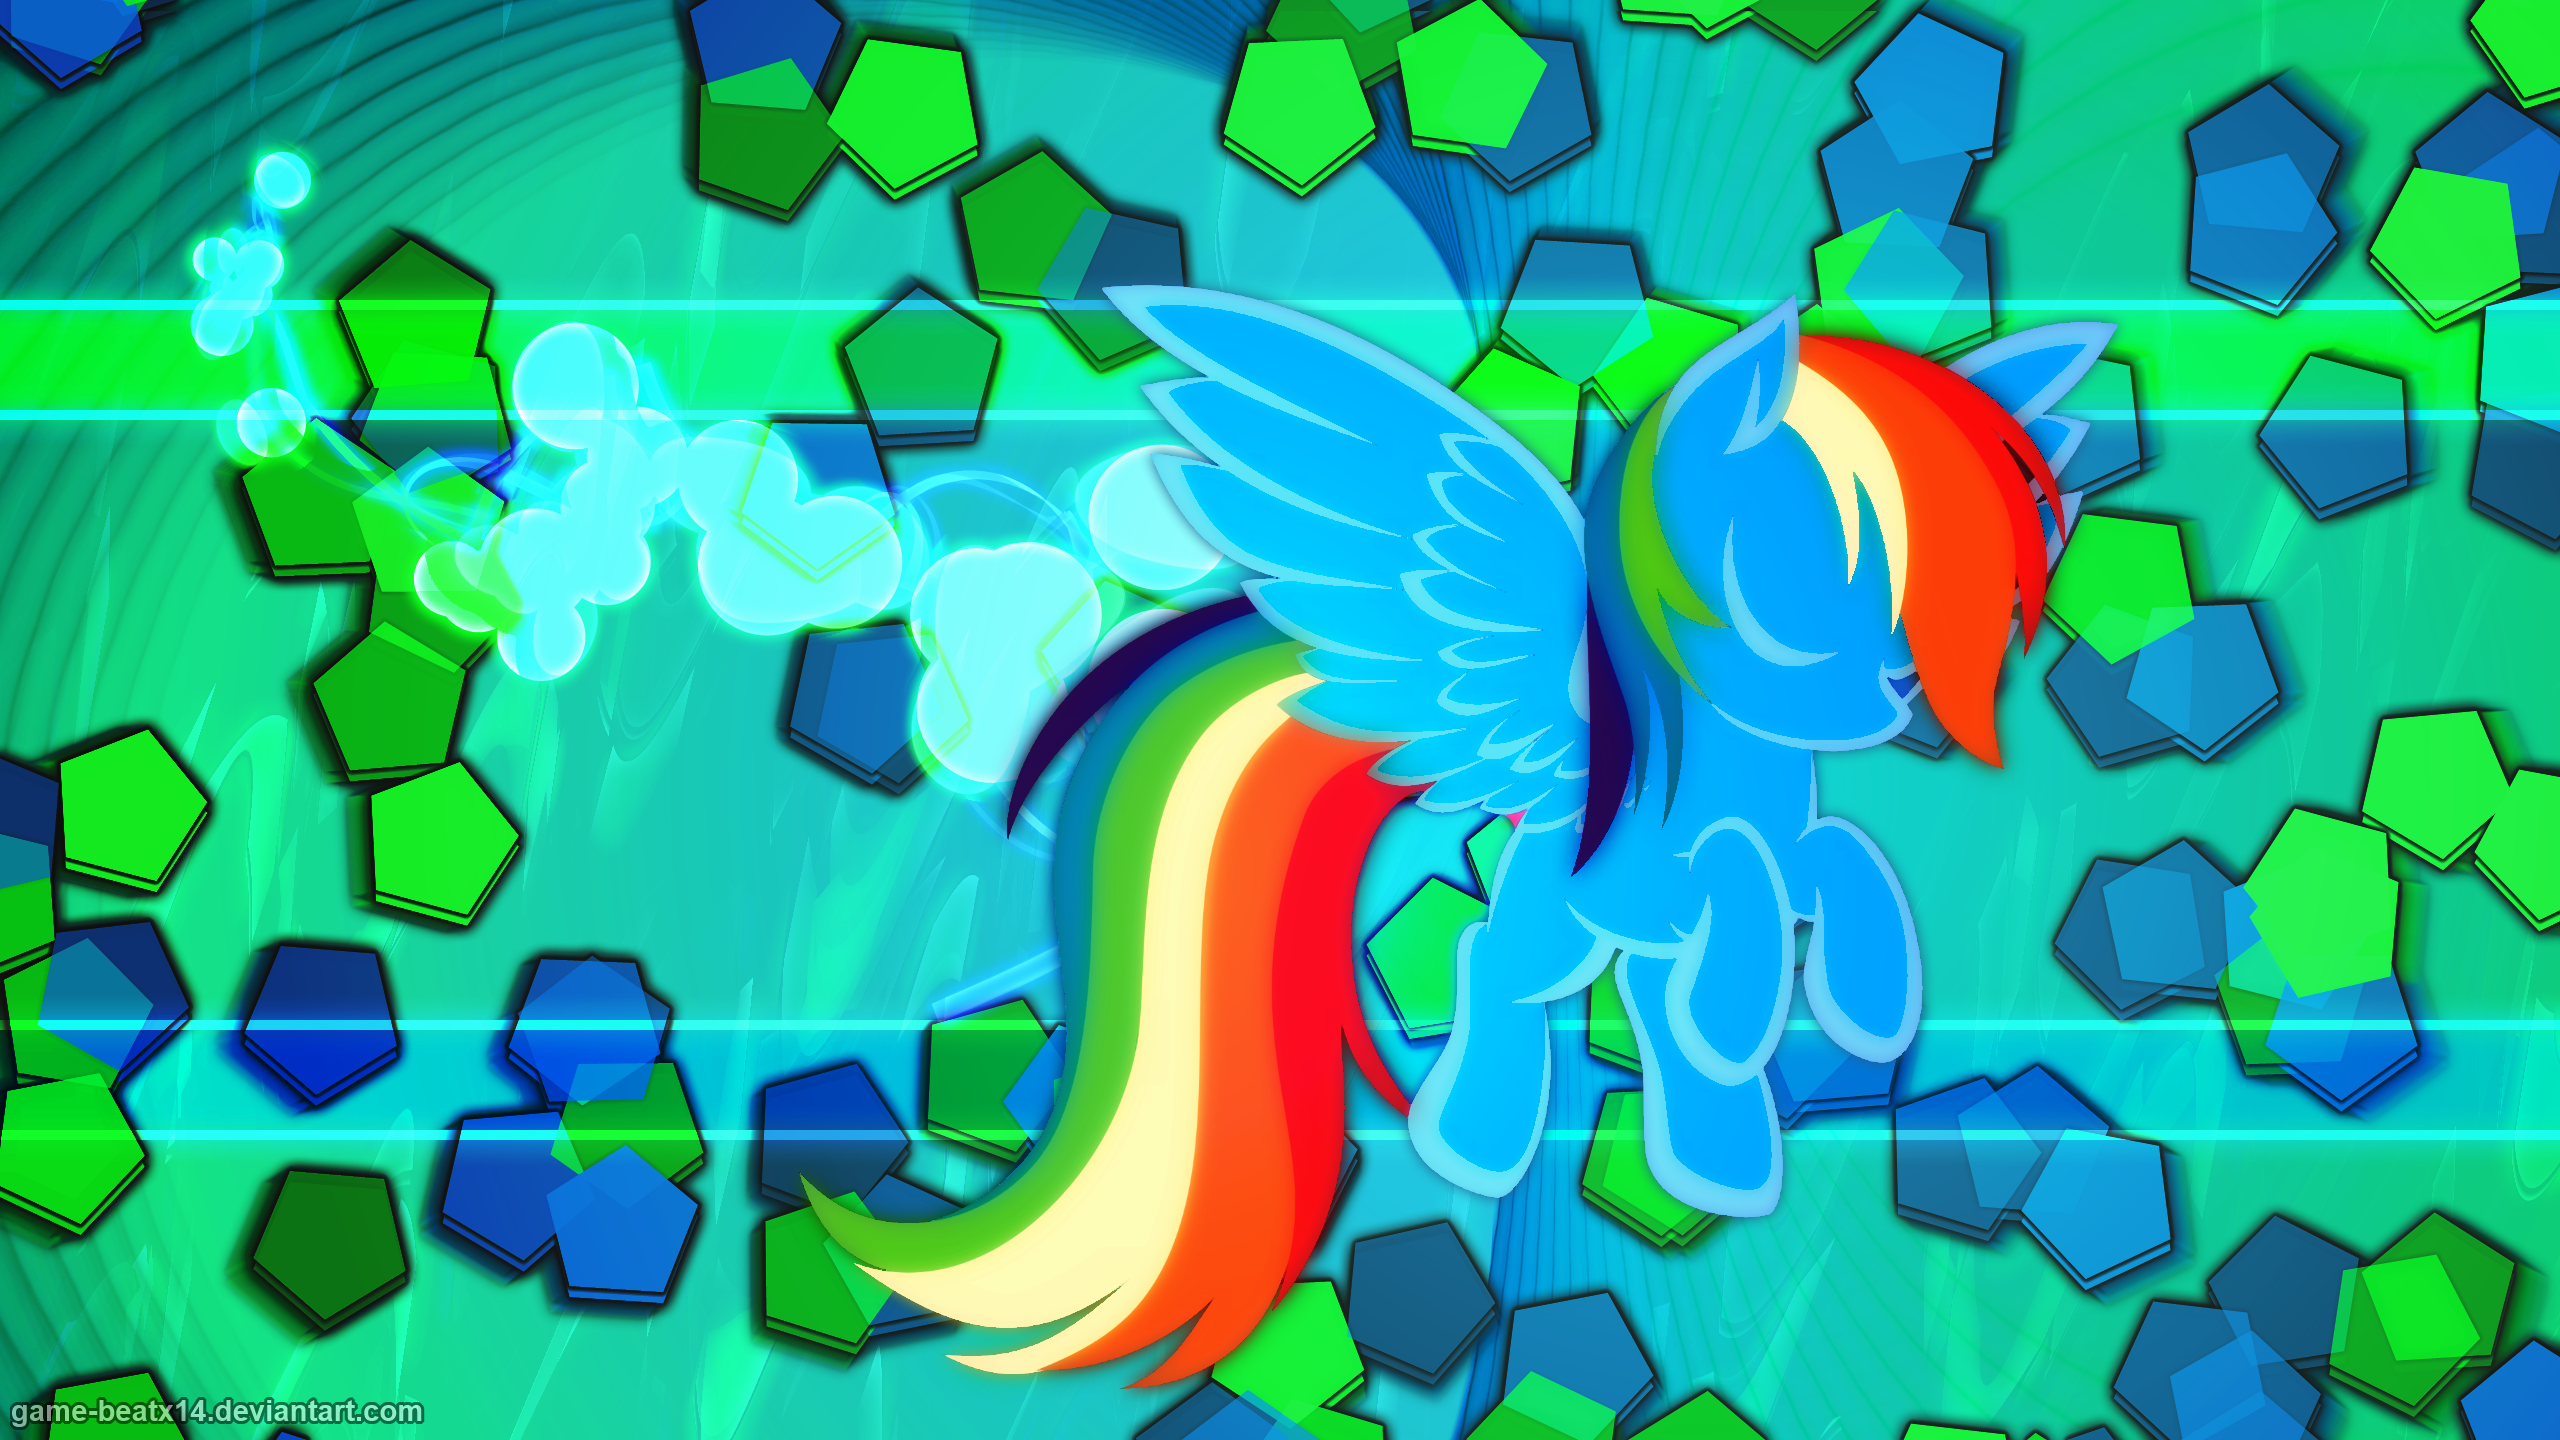 Graceful Dash by Game-BeatX14 and UP1TER